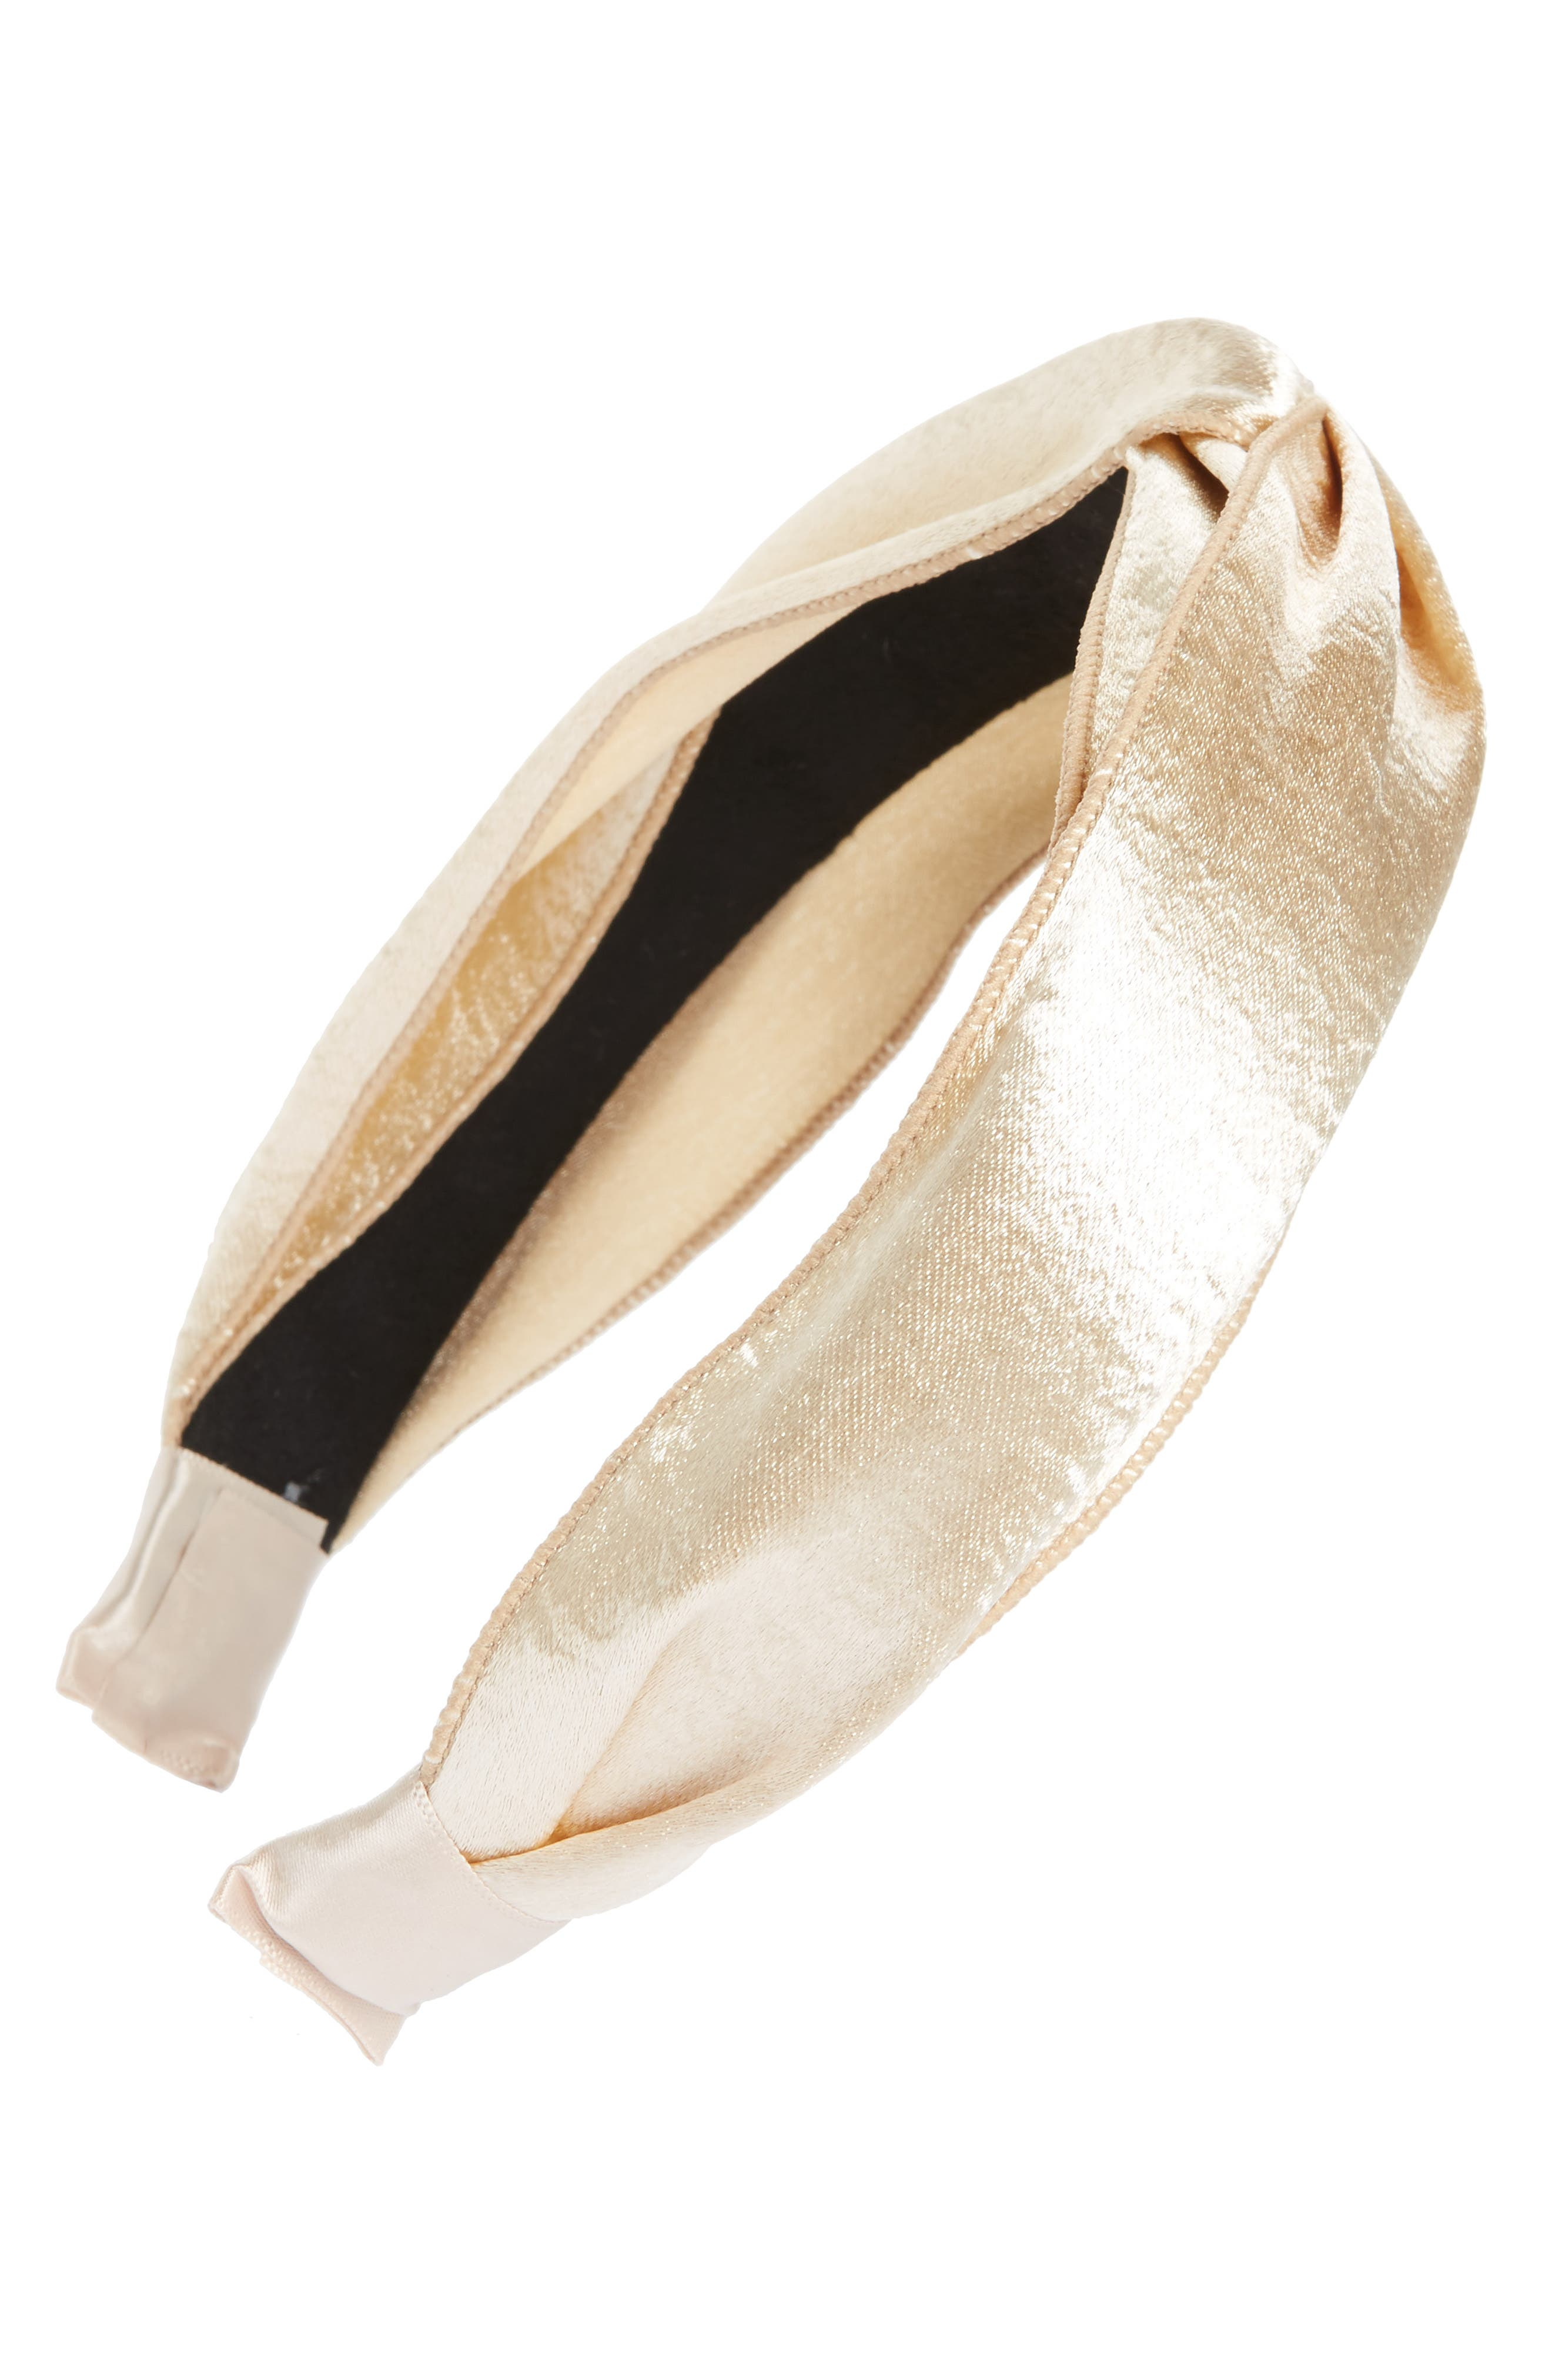 Cara Metallic Twist Knot Headband